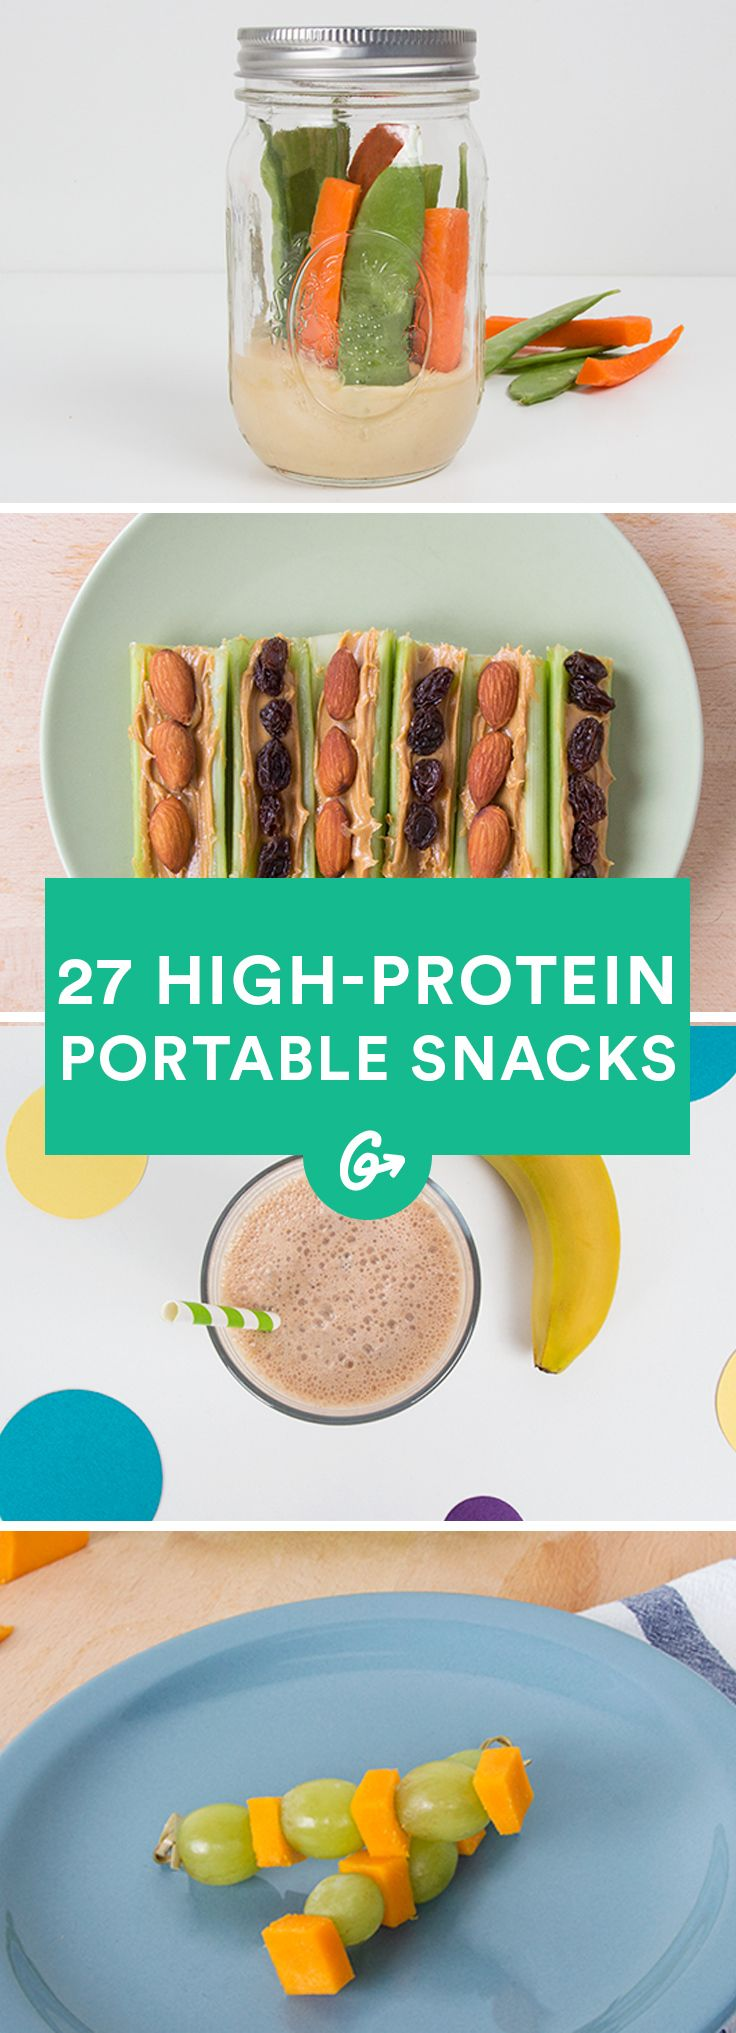 27 Healthy and Portable High-Protein Snacks #highprotein #snacks http://greatist.com/health/high-protein-snacks-portable